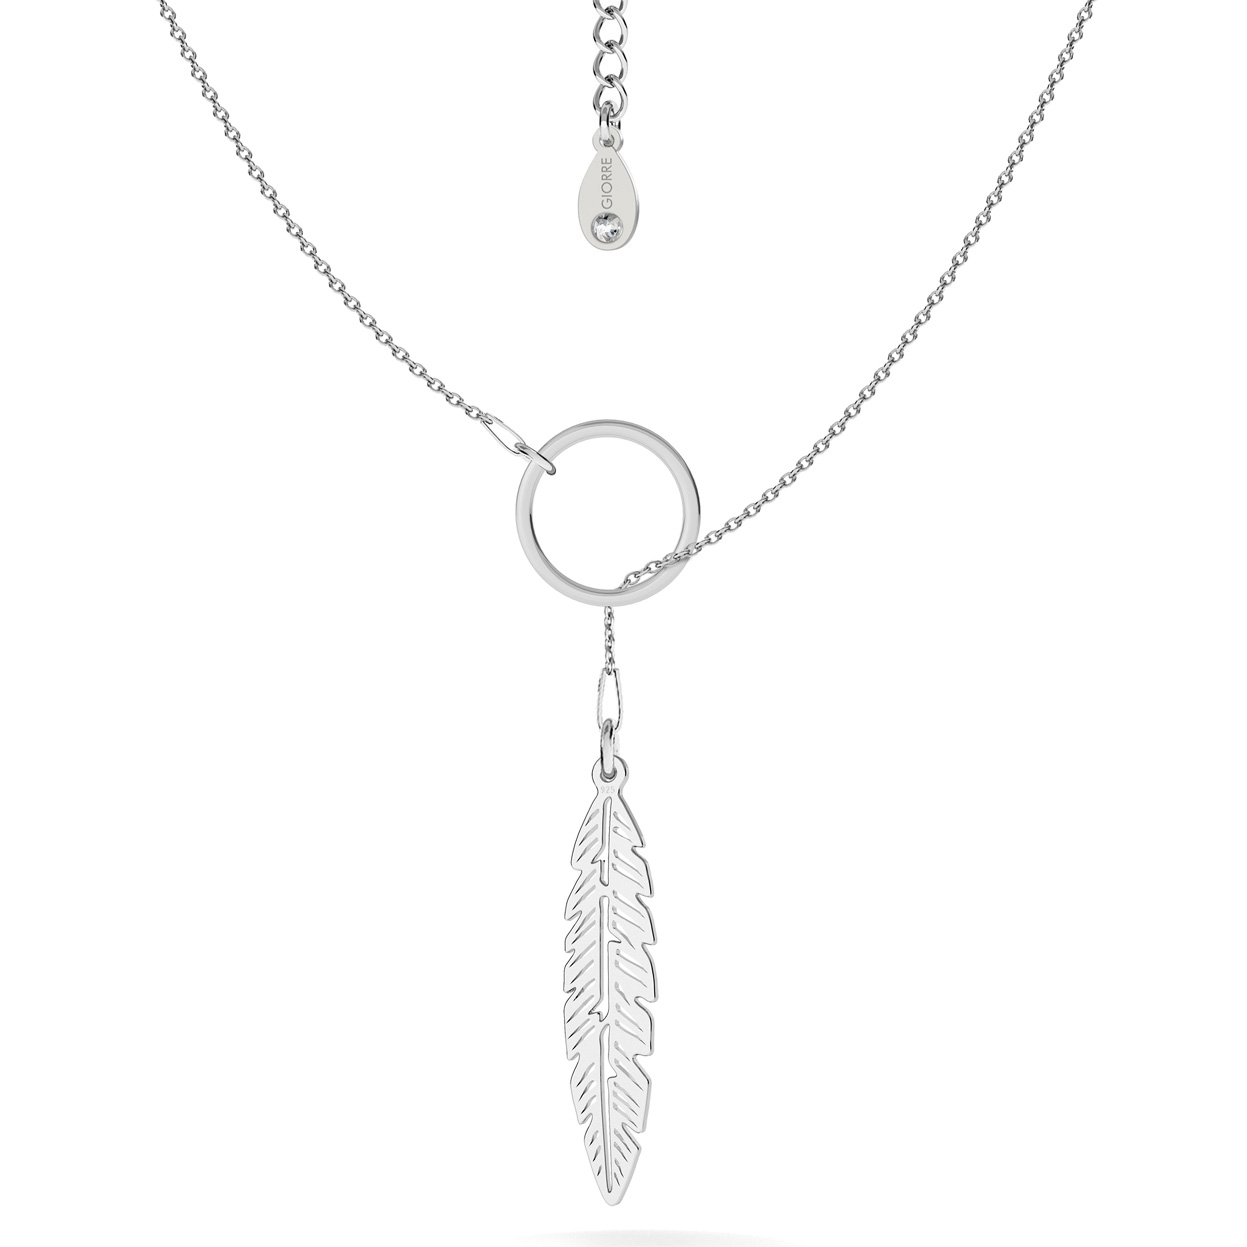 LEAF NECKLACE, STERLING SILVER 925